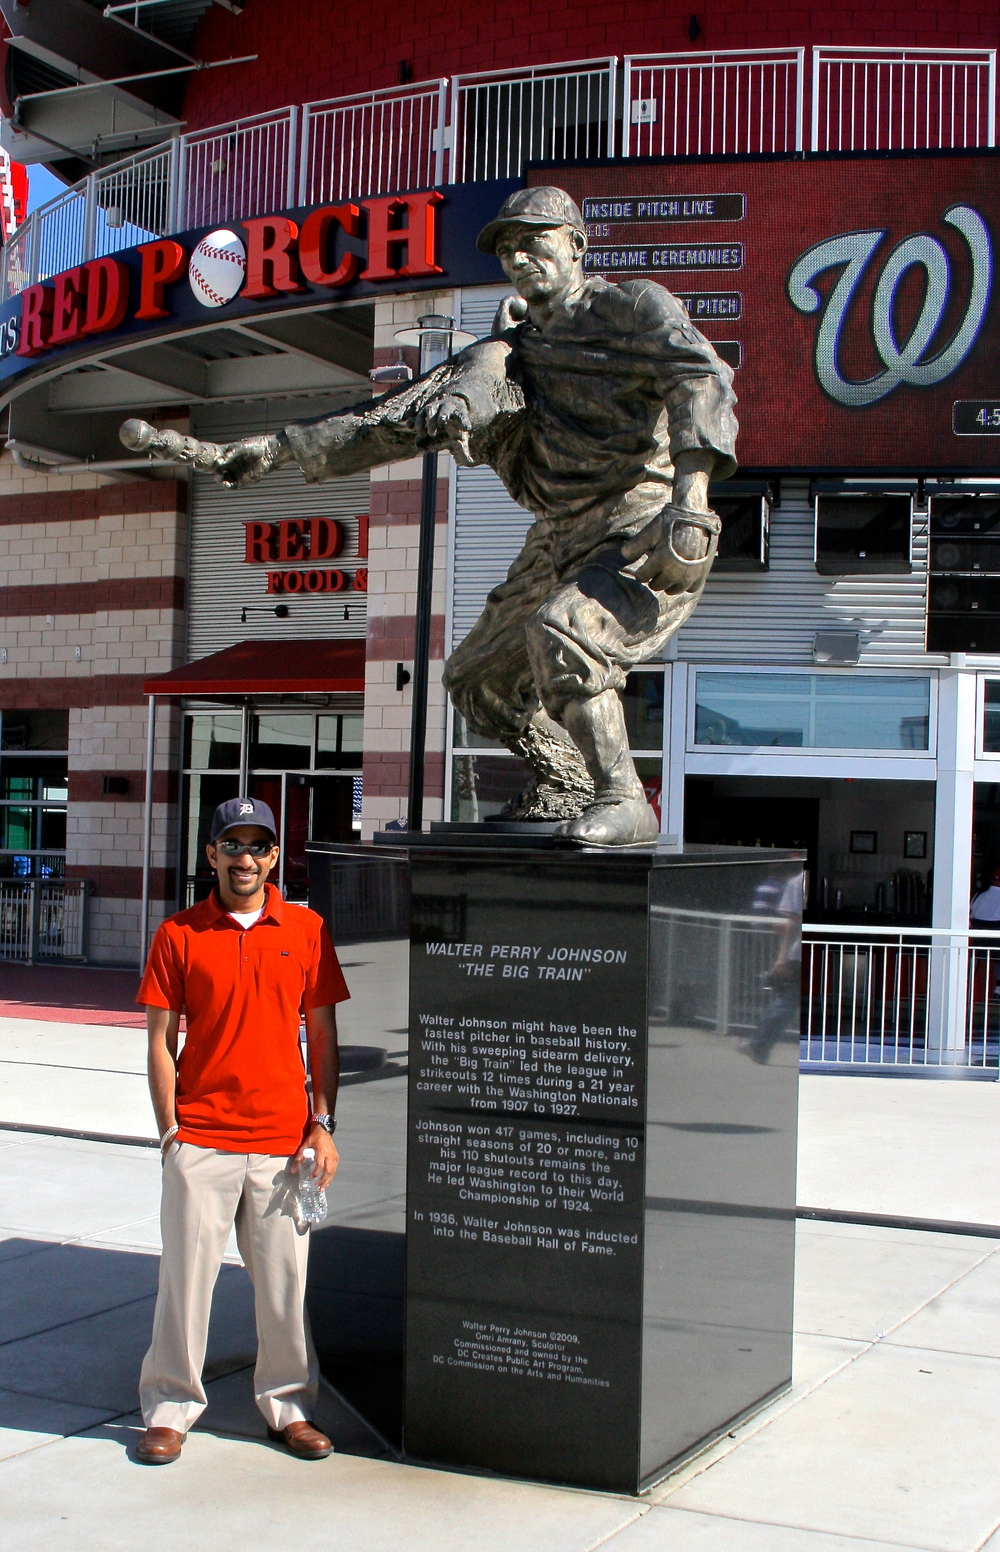 Me and Walter Johnson